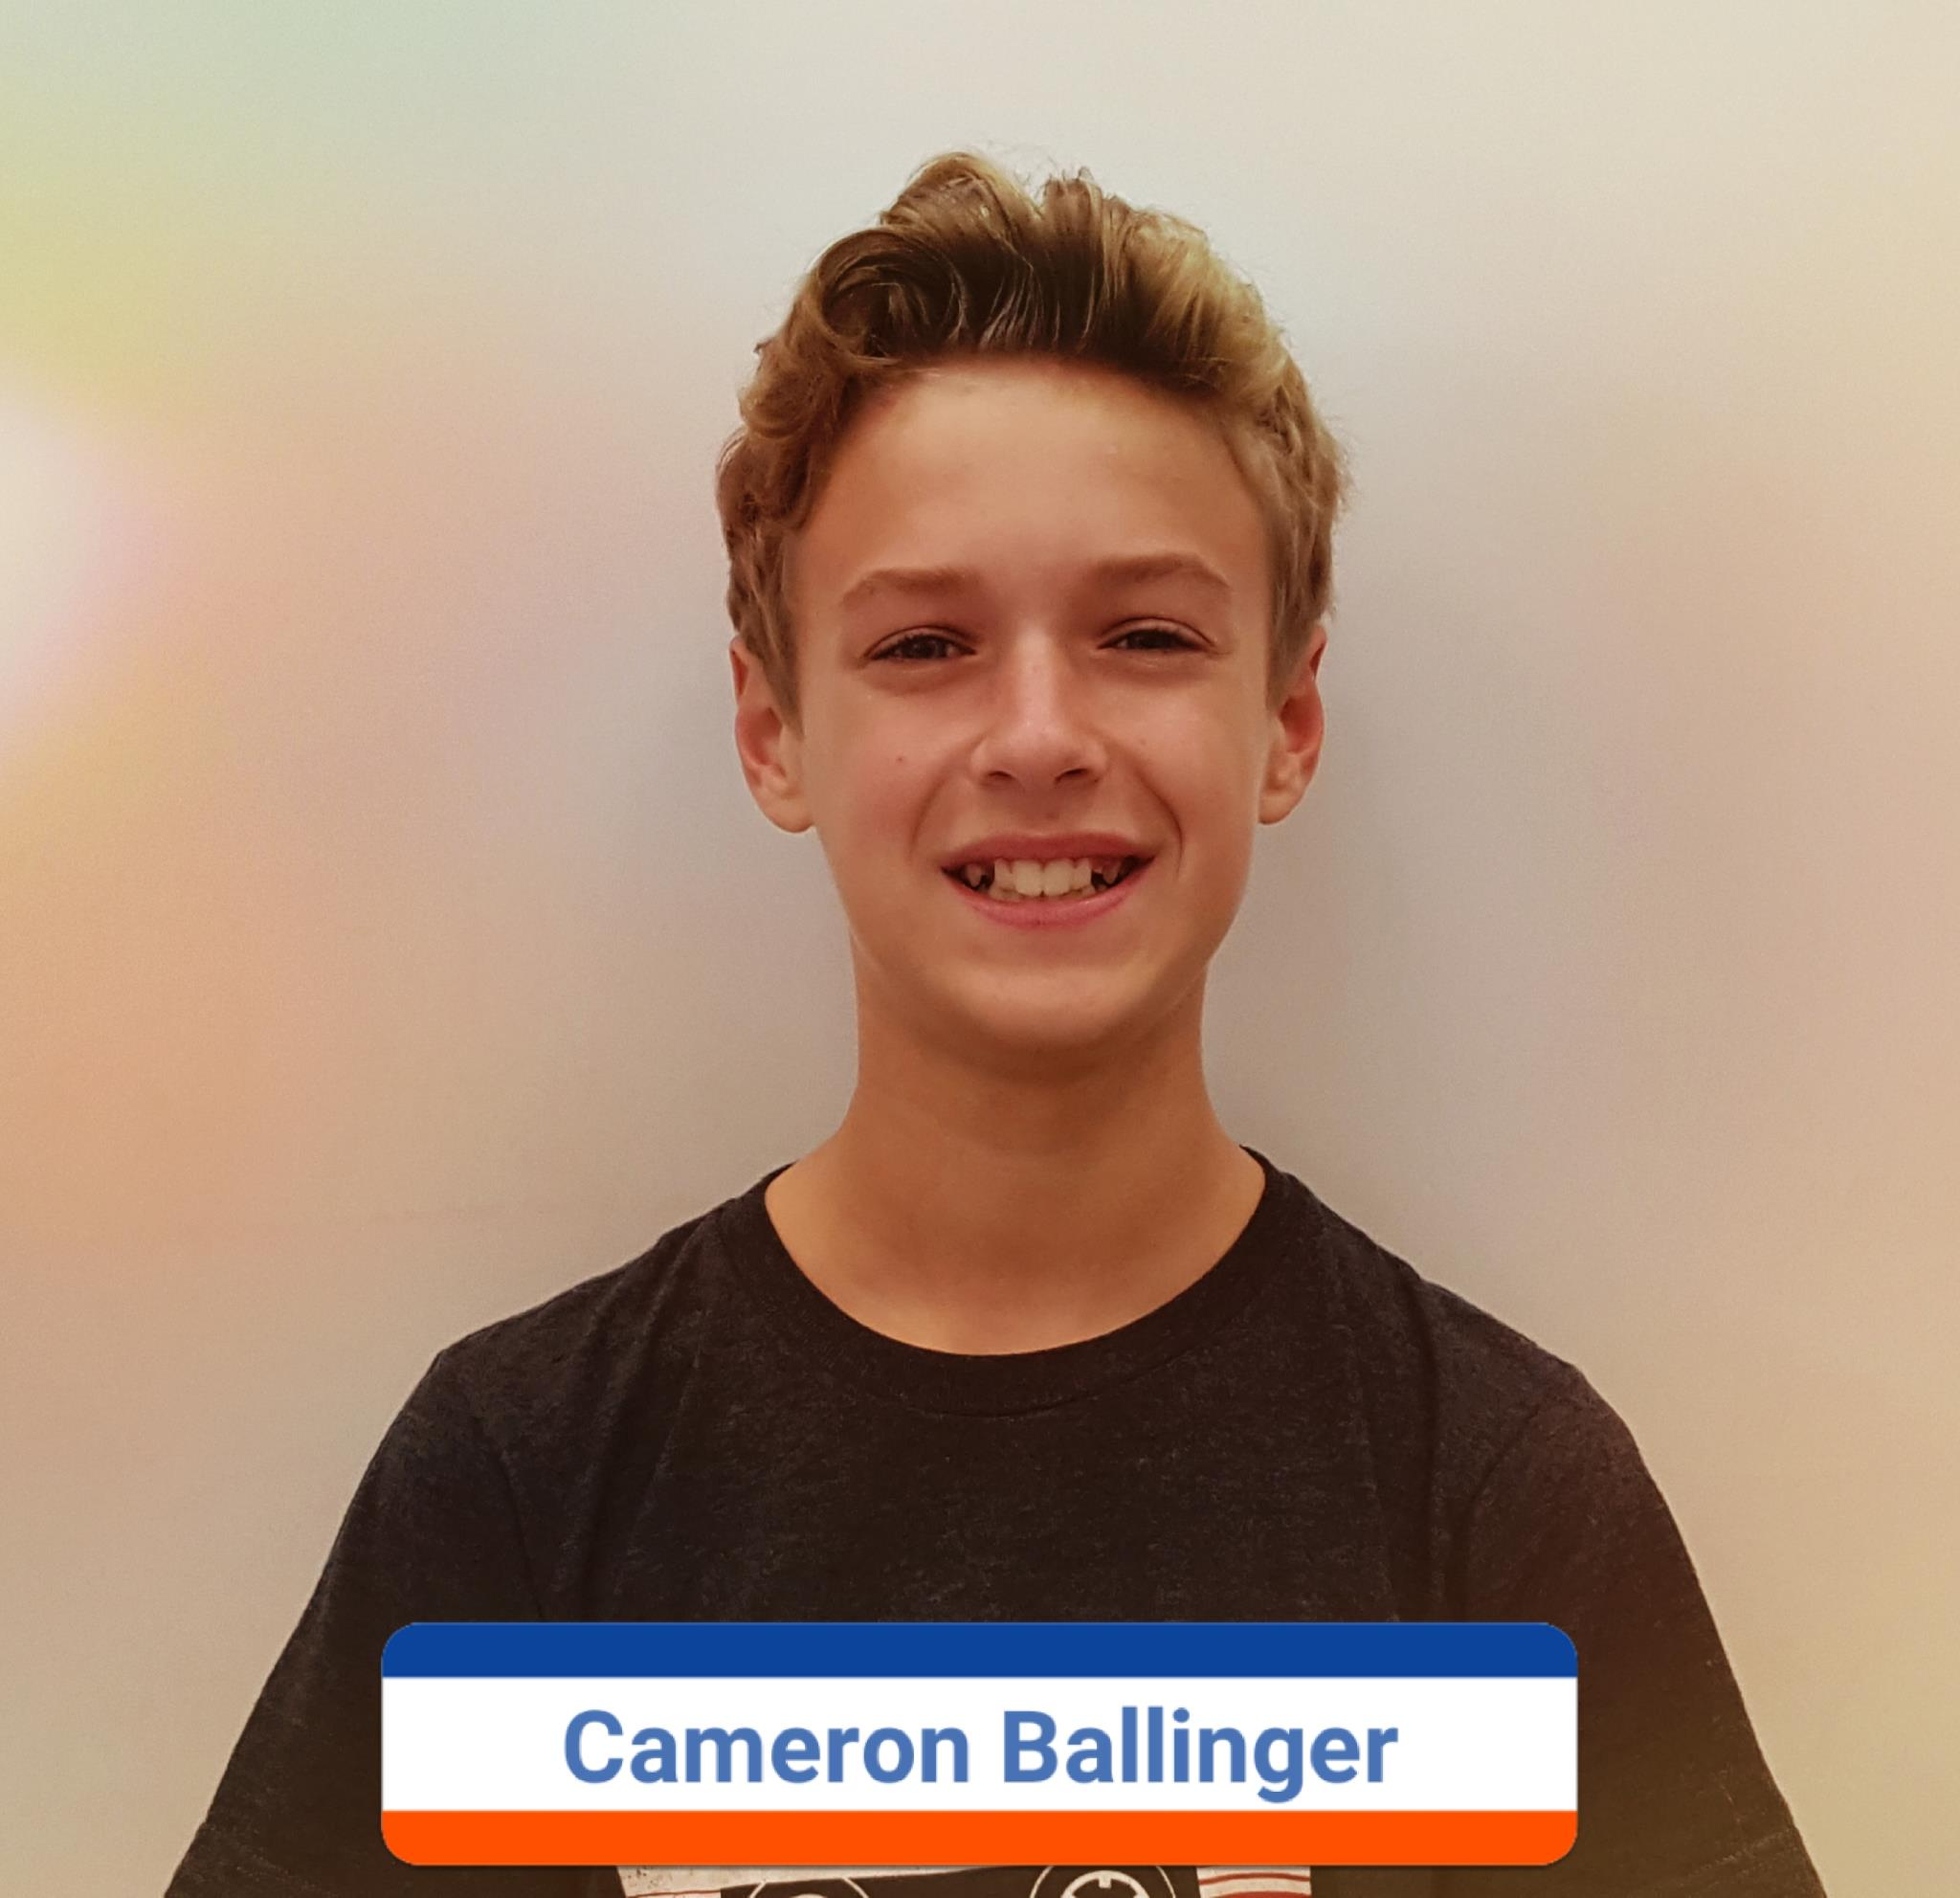 Cameron Ballinger photo